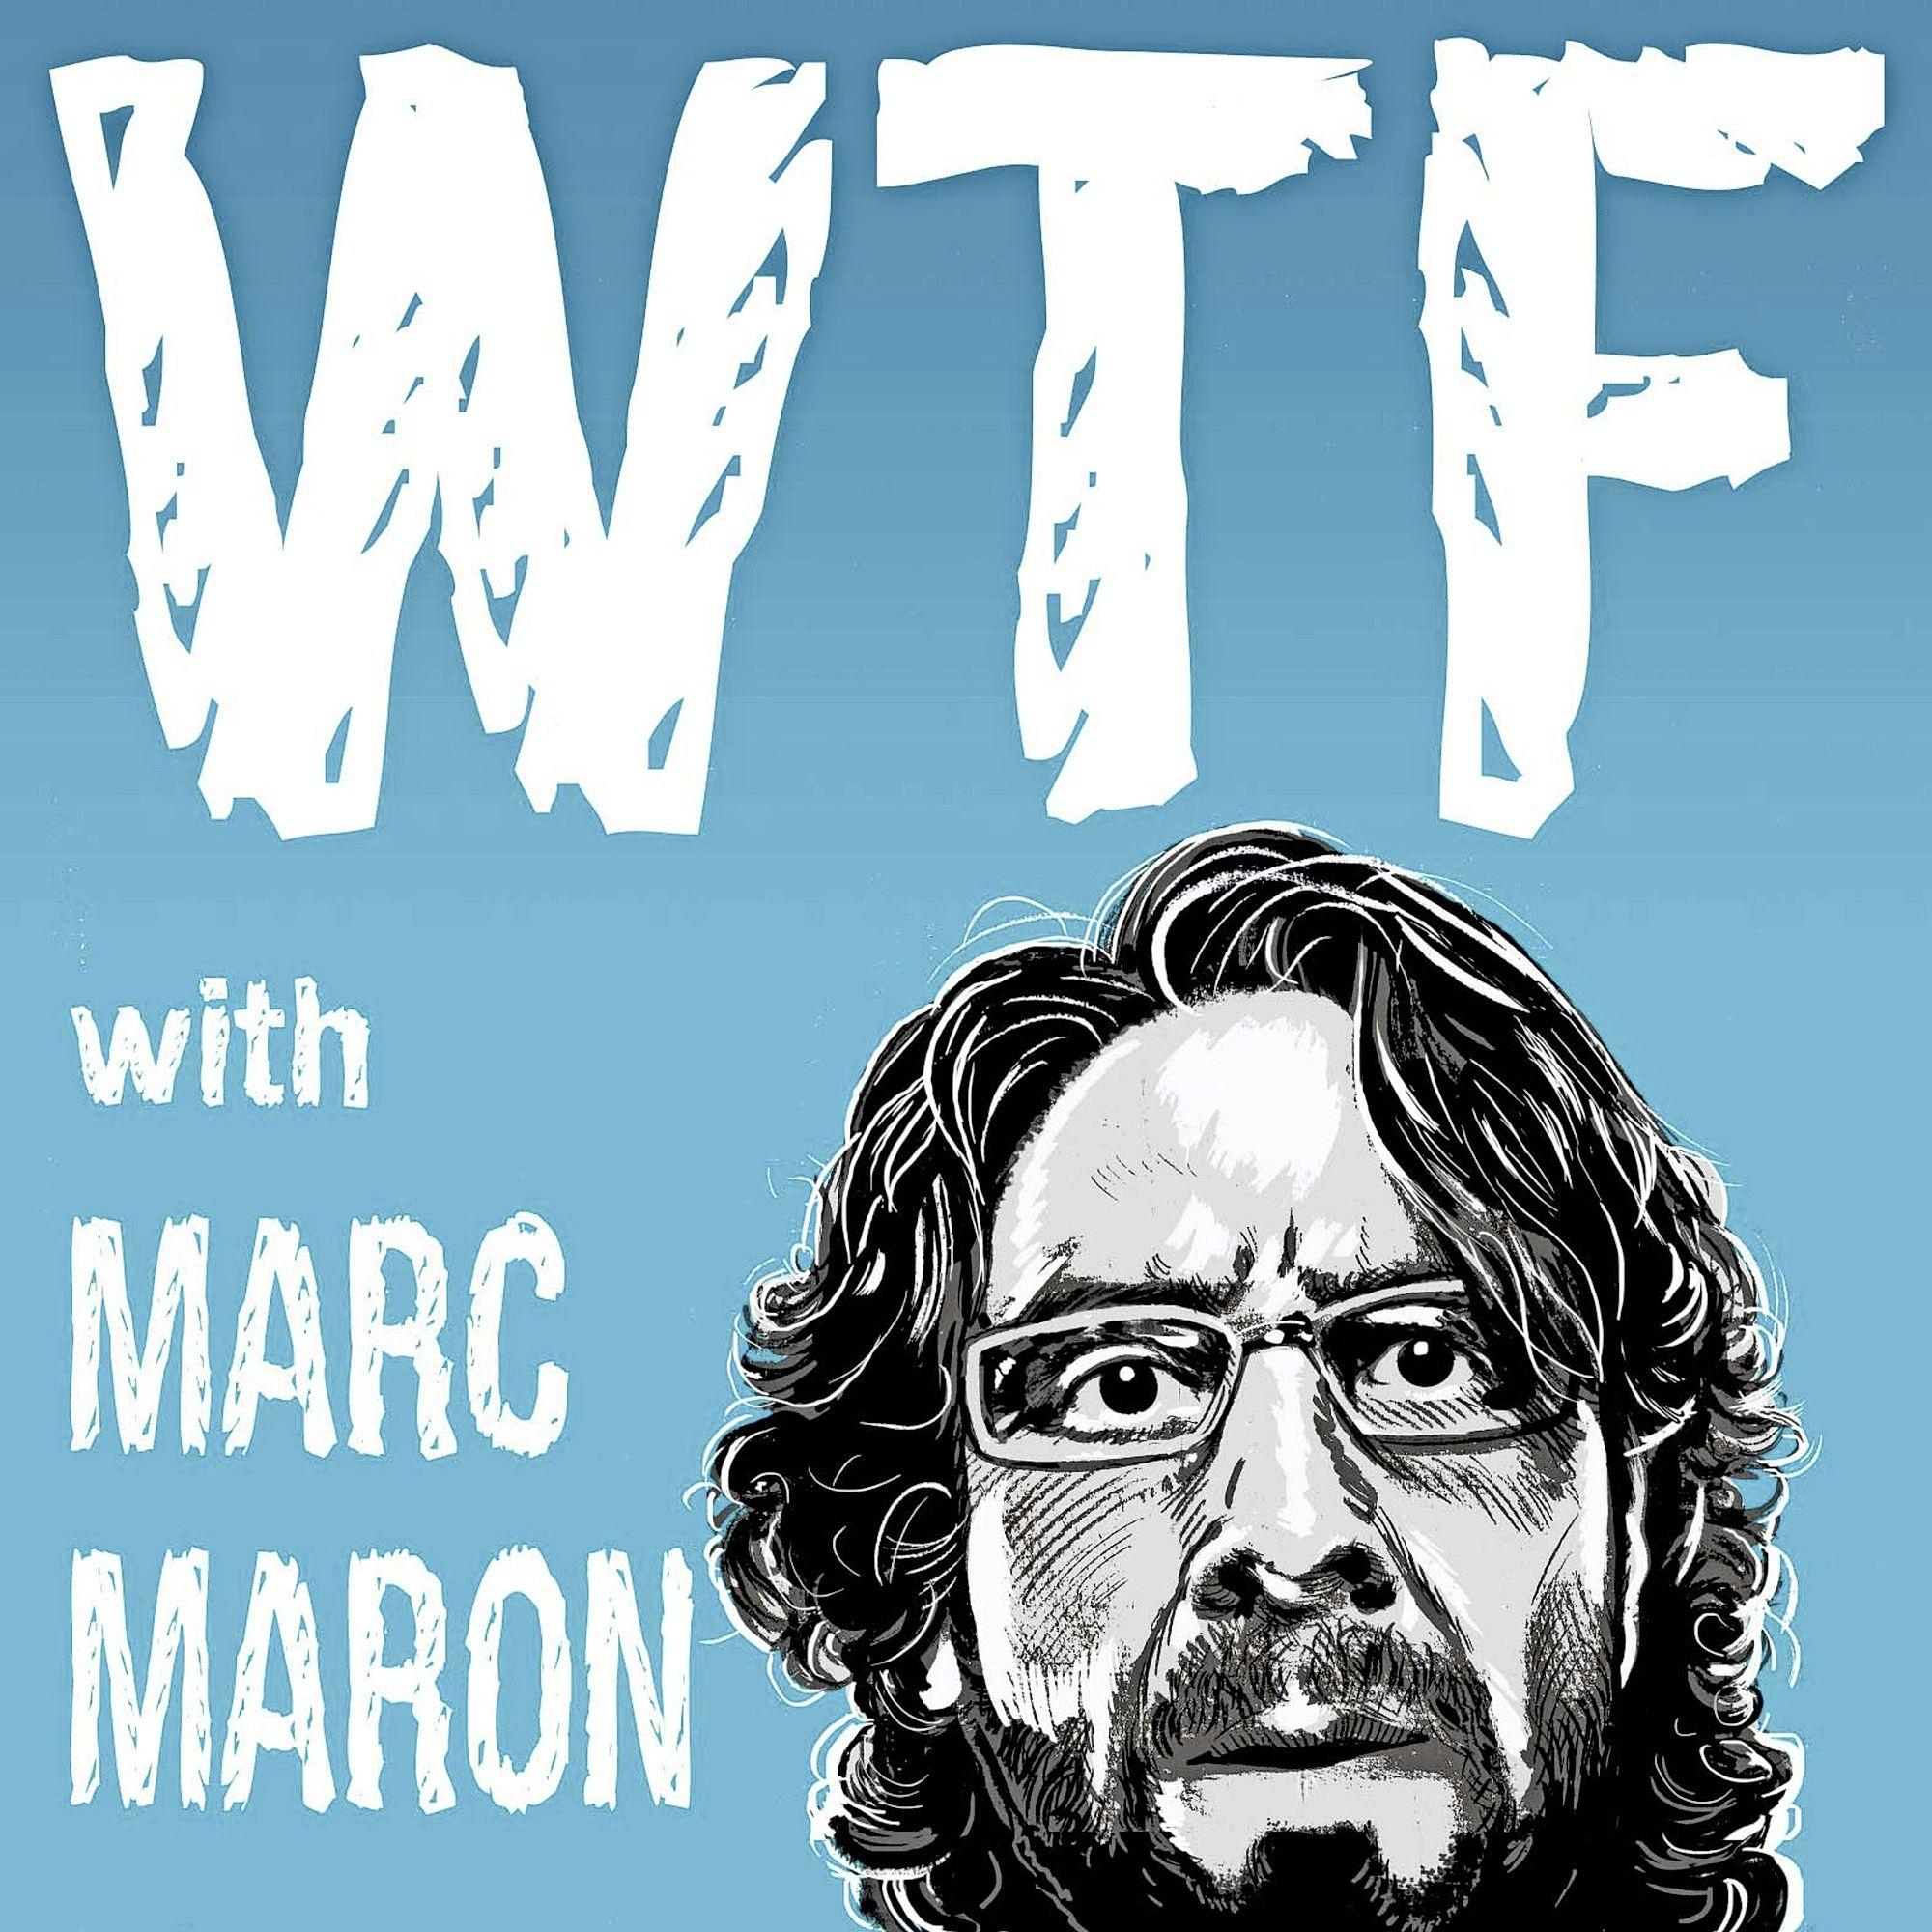 Podcast: How are you what the fuckers! Marc Maron spreekt ze allemaal